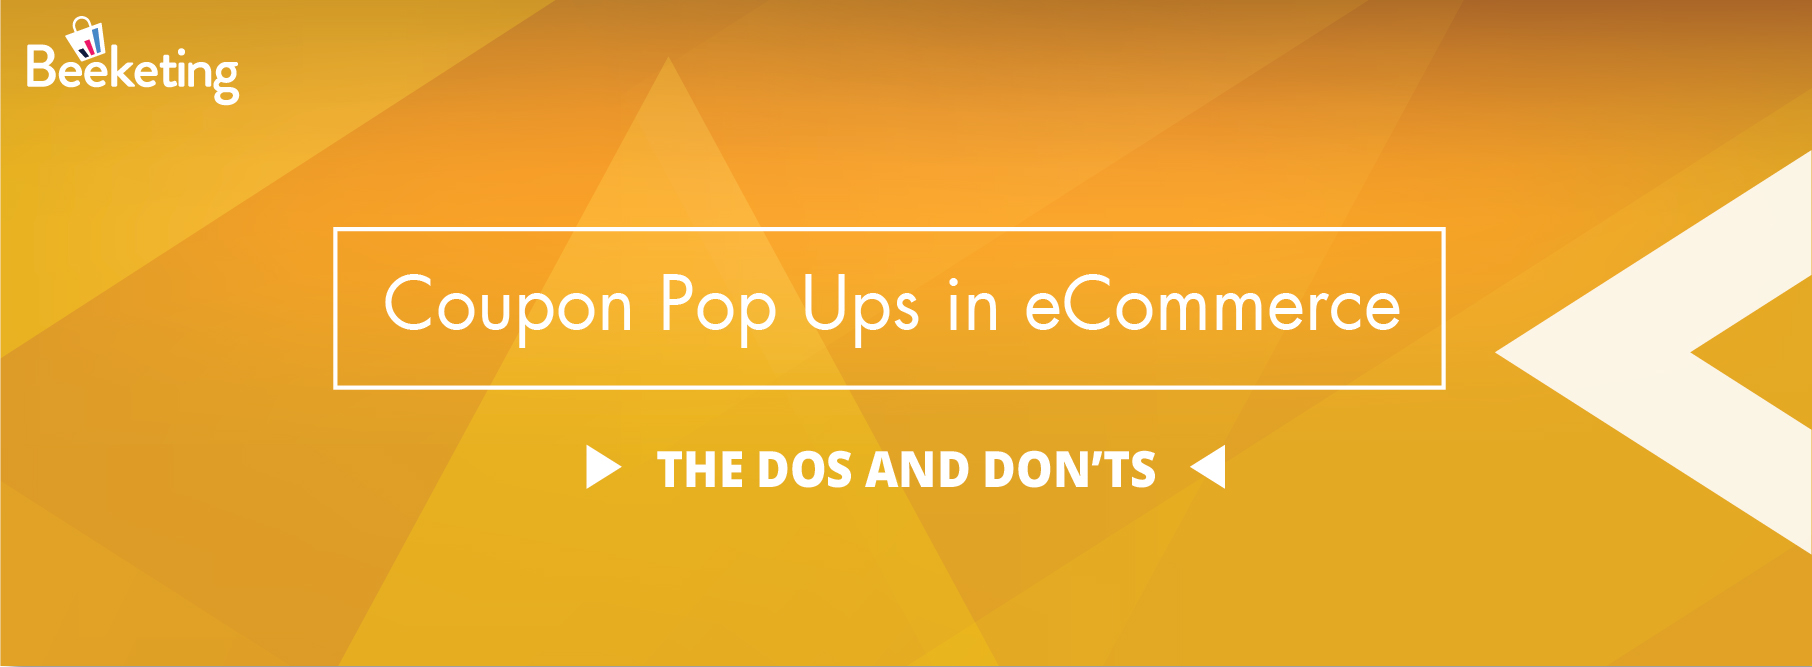 Coupon popups in ecommerce-01